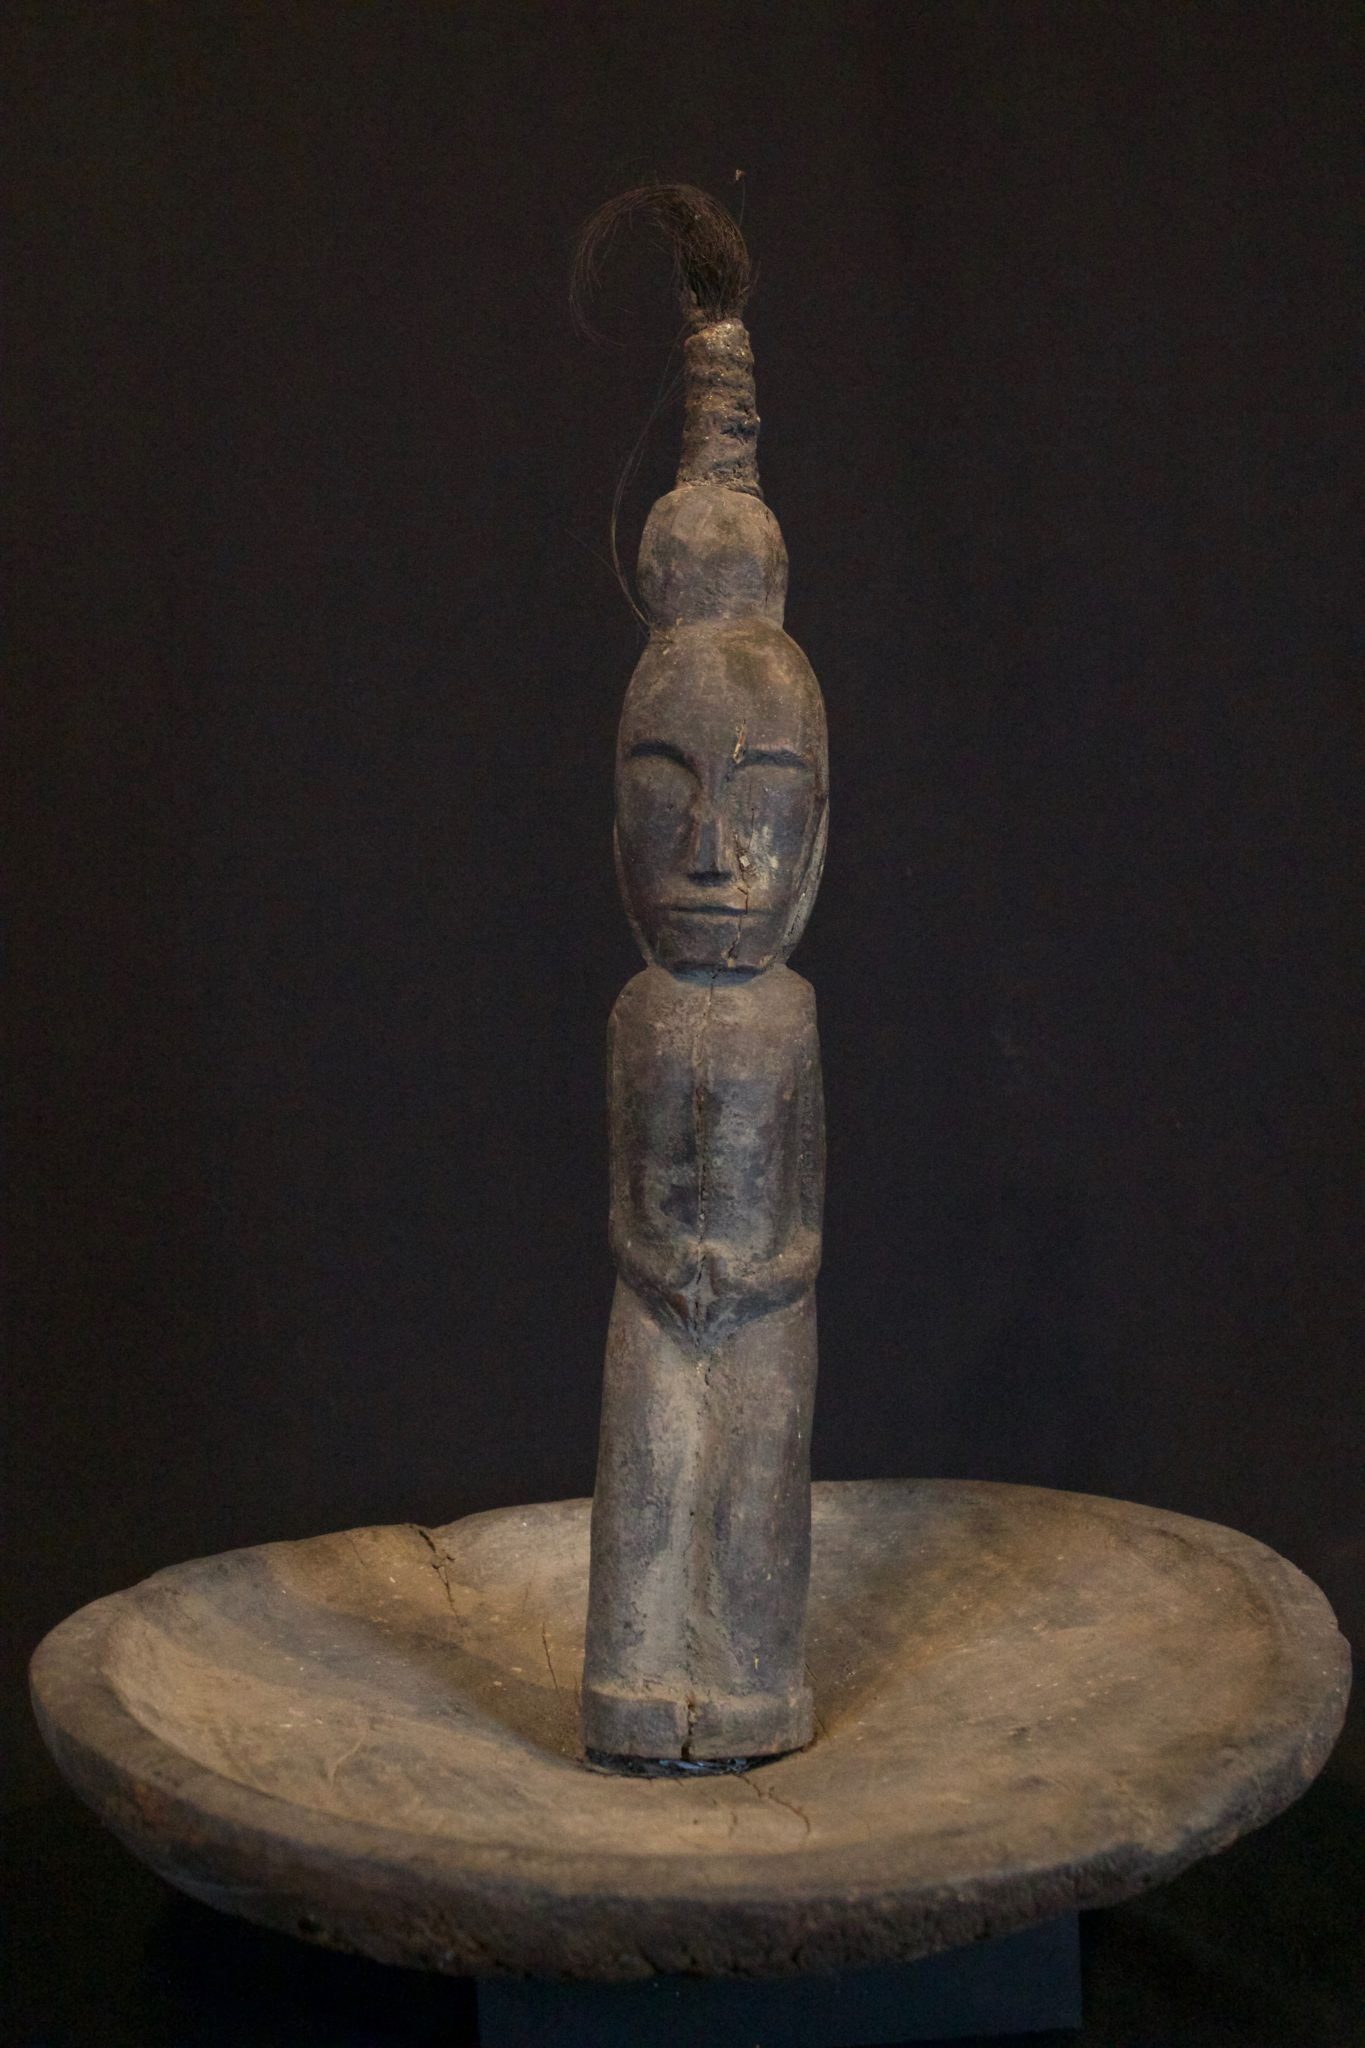 """Shaman Figure andOffering Platter, Sumatra, Indonesia, Batak tribe, Late 19th c, Wood, animal hair. For making offerings to spirits and deities. 18 ½' x 14"""" x 14"""", $650."""